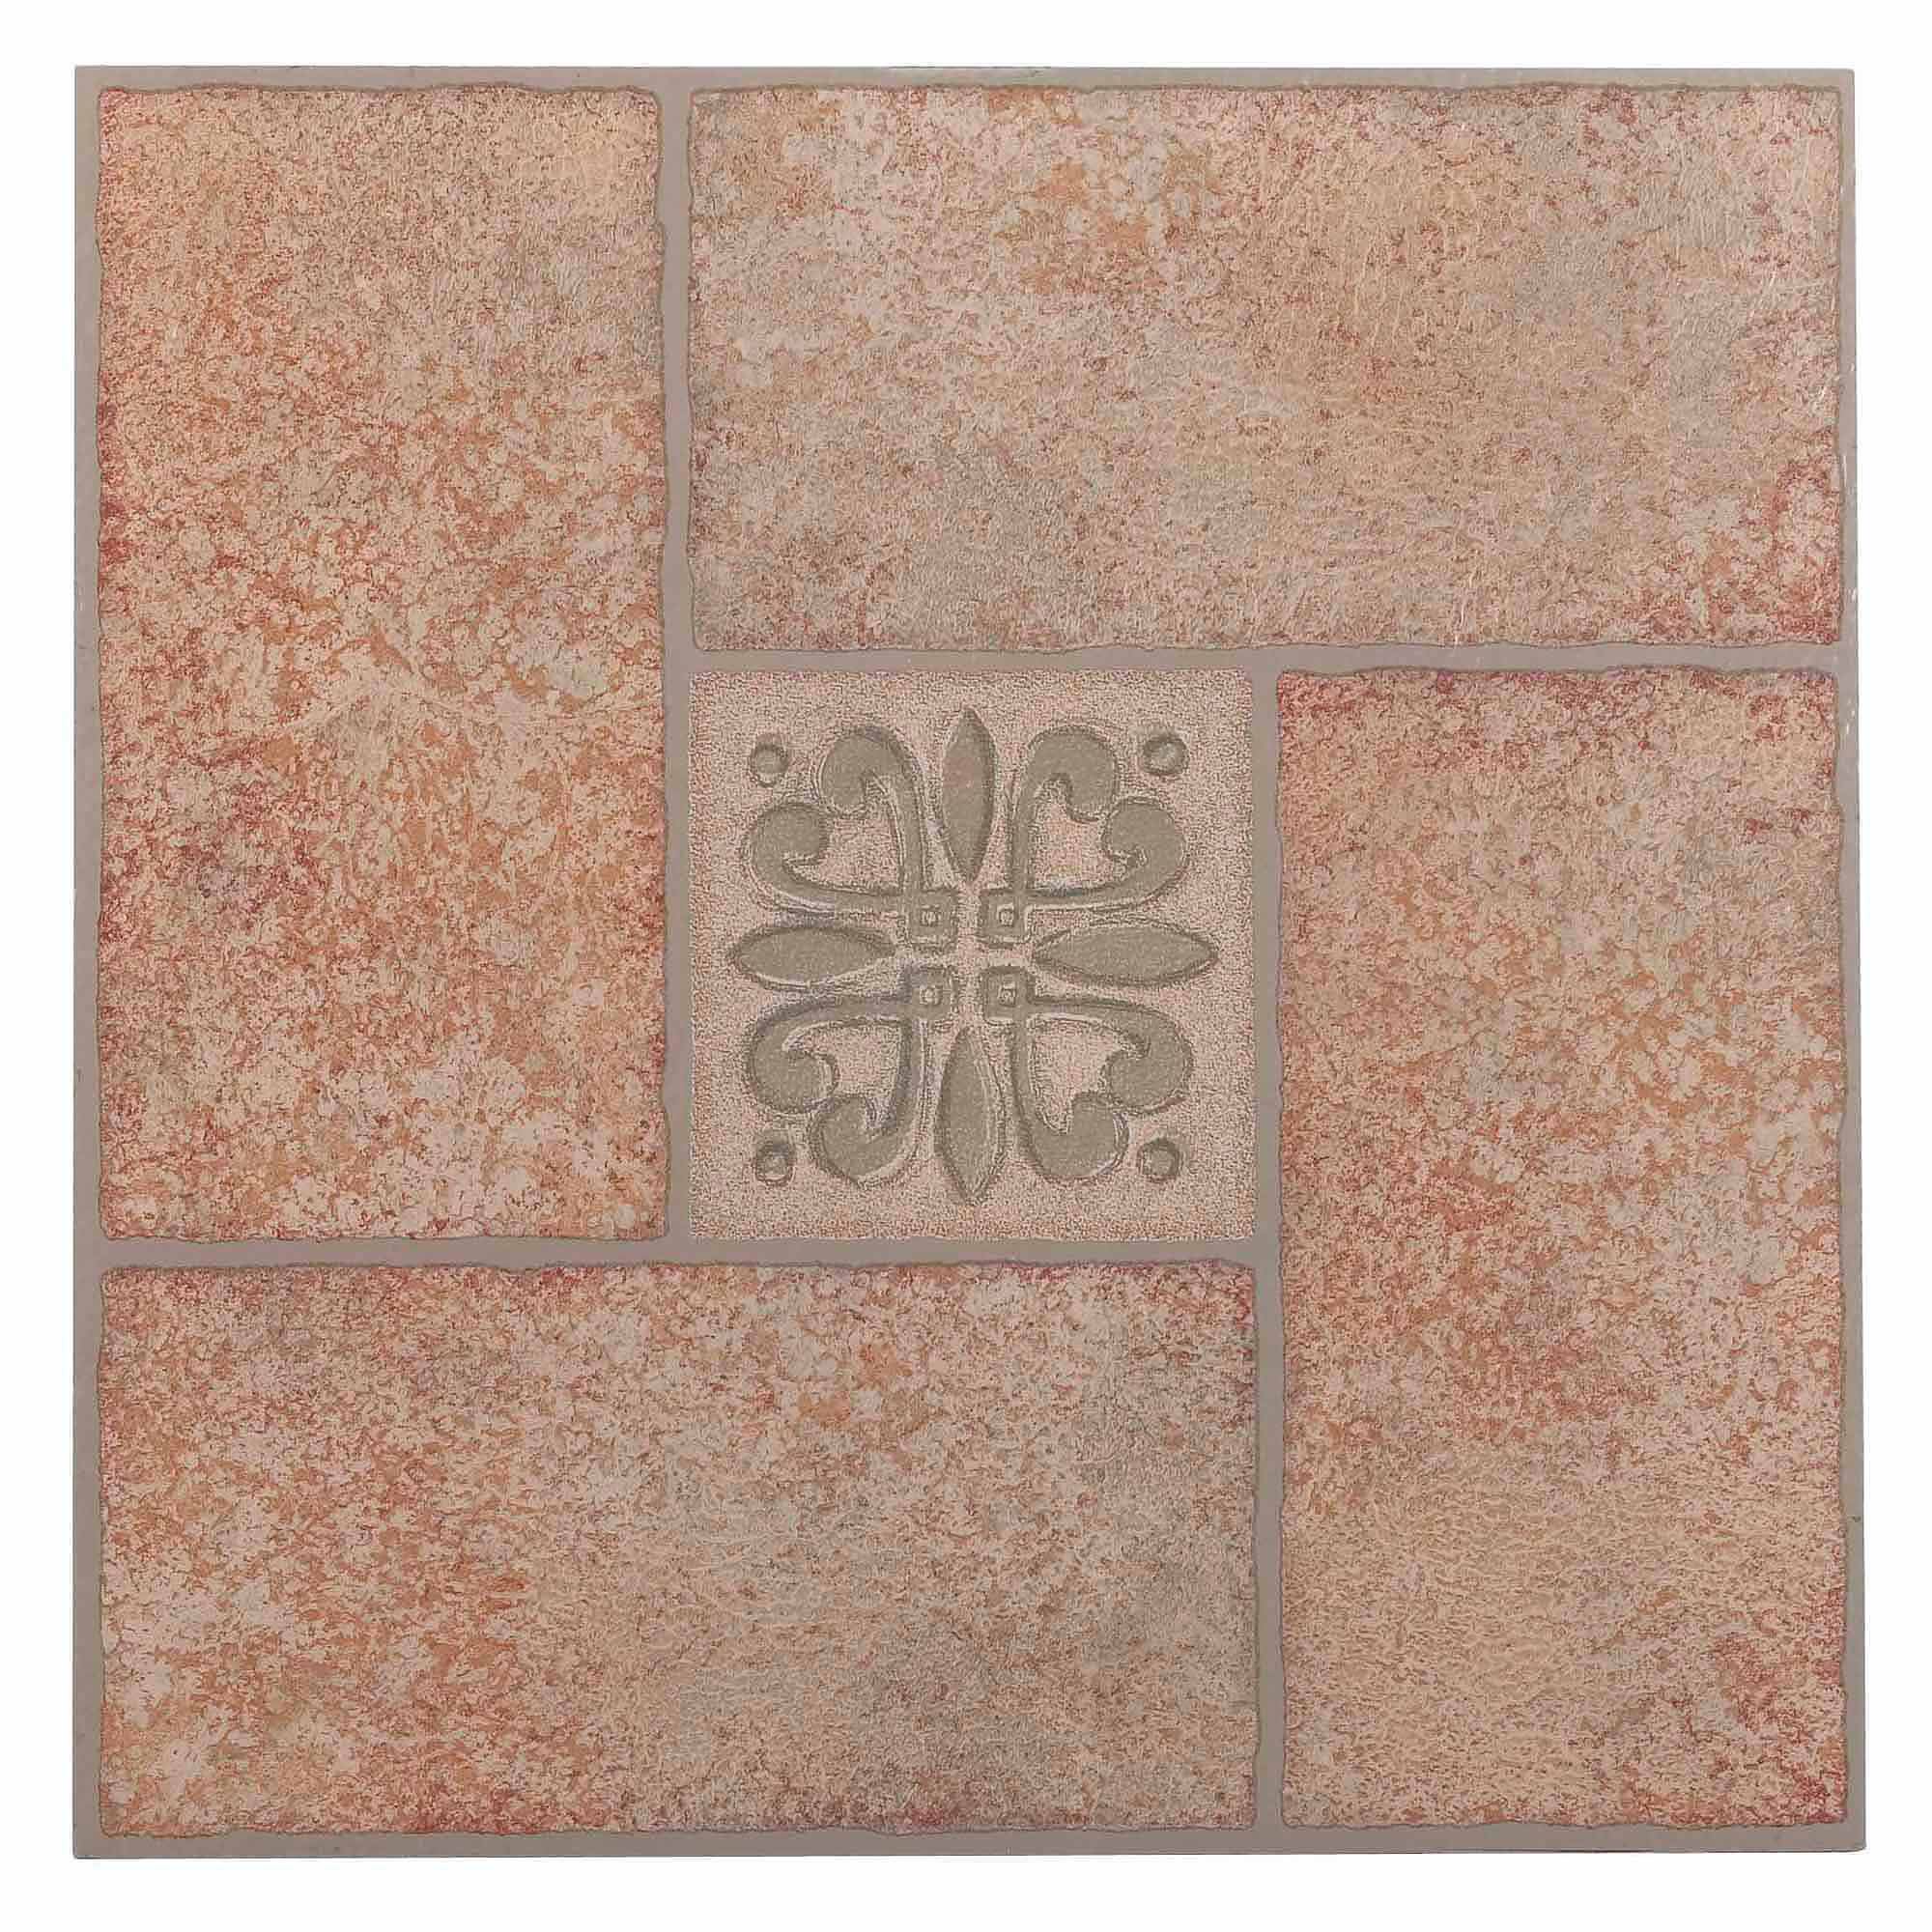 NEXUS Beige Terracotta Motif Center 12x12 Self Adhesive Vinyl Floor Tile    20 Tiles/20